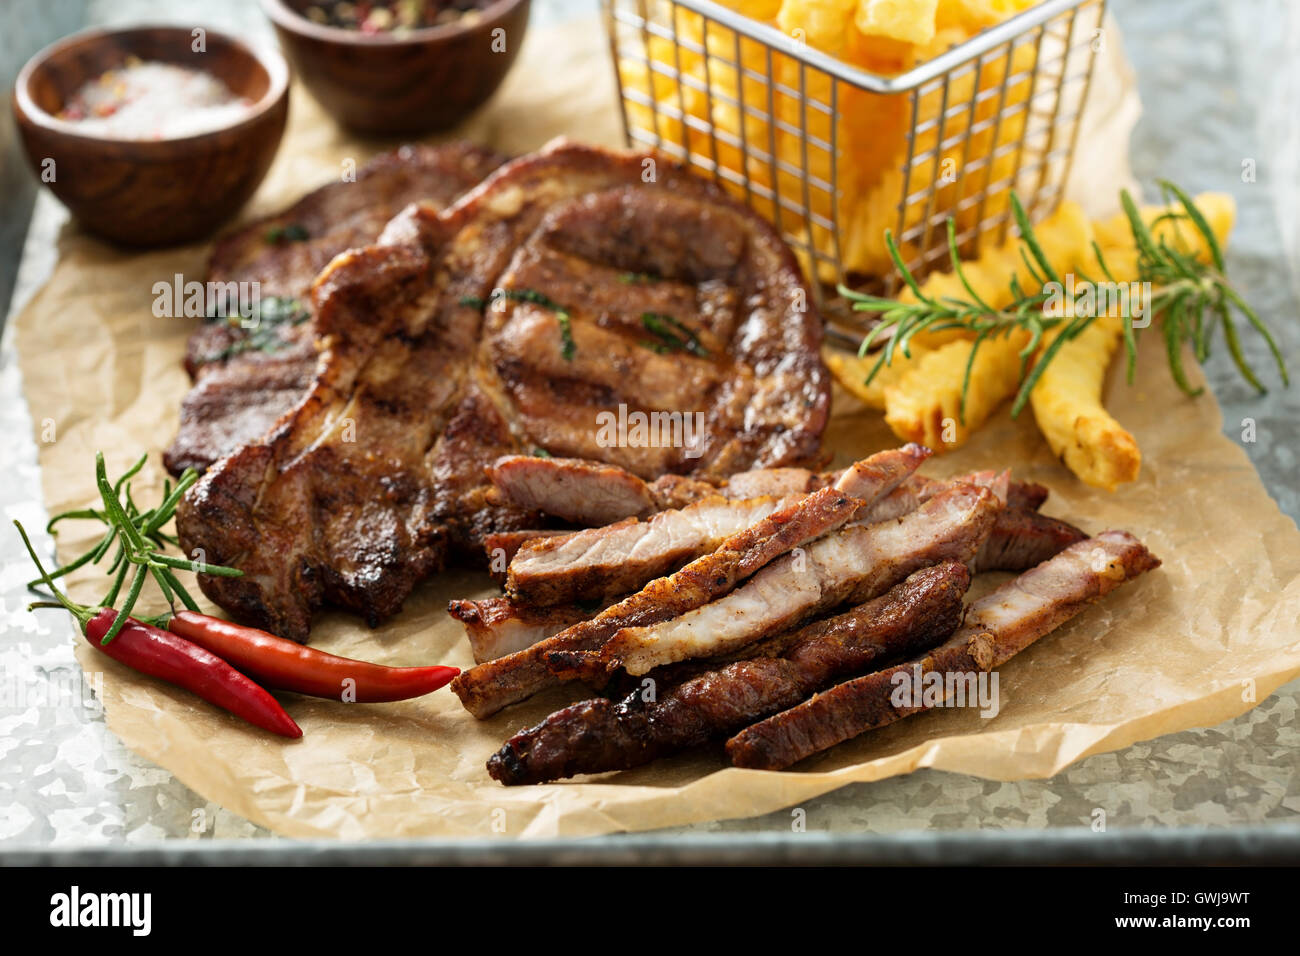 Grilled pork with french fries - Stock Image